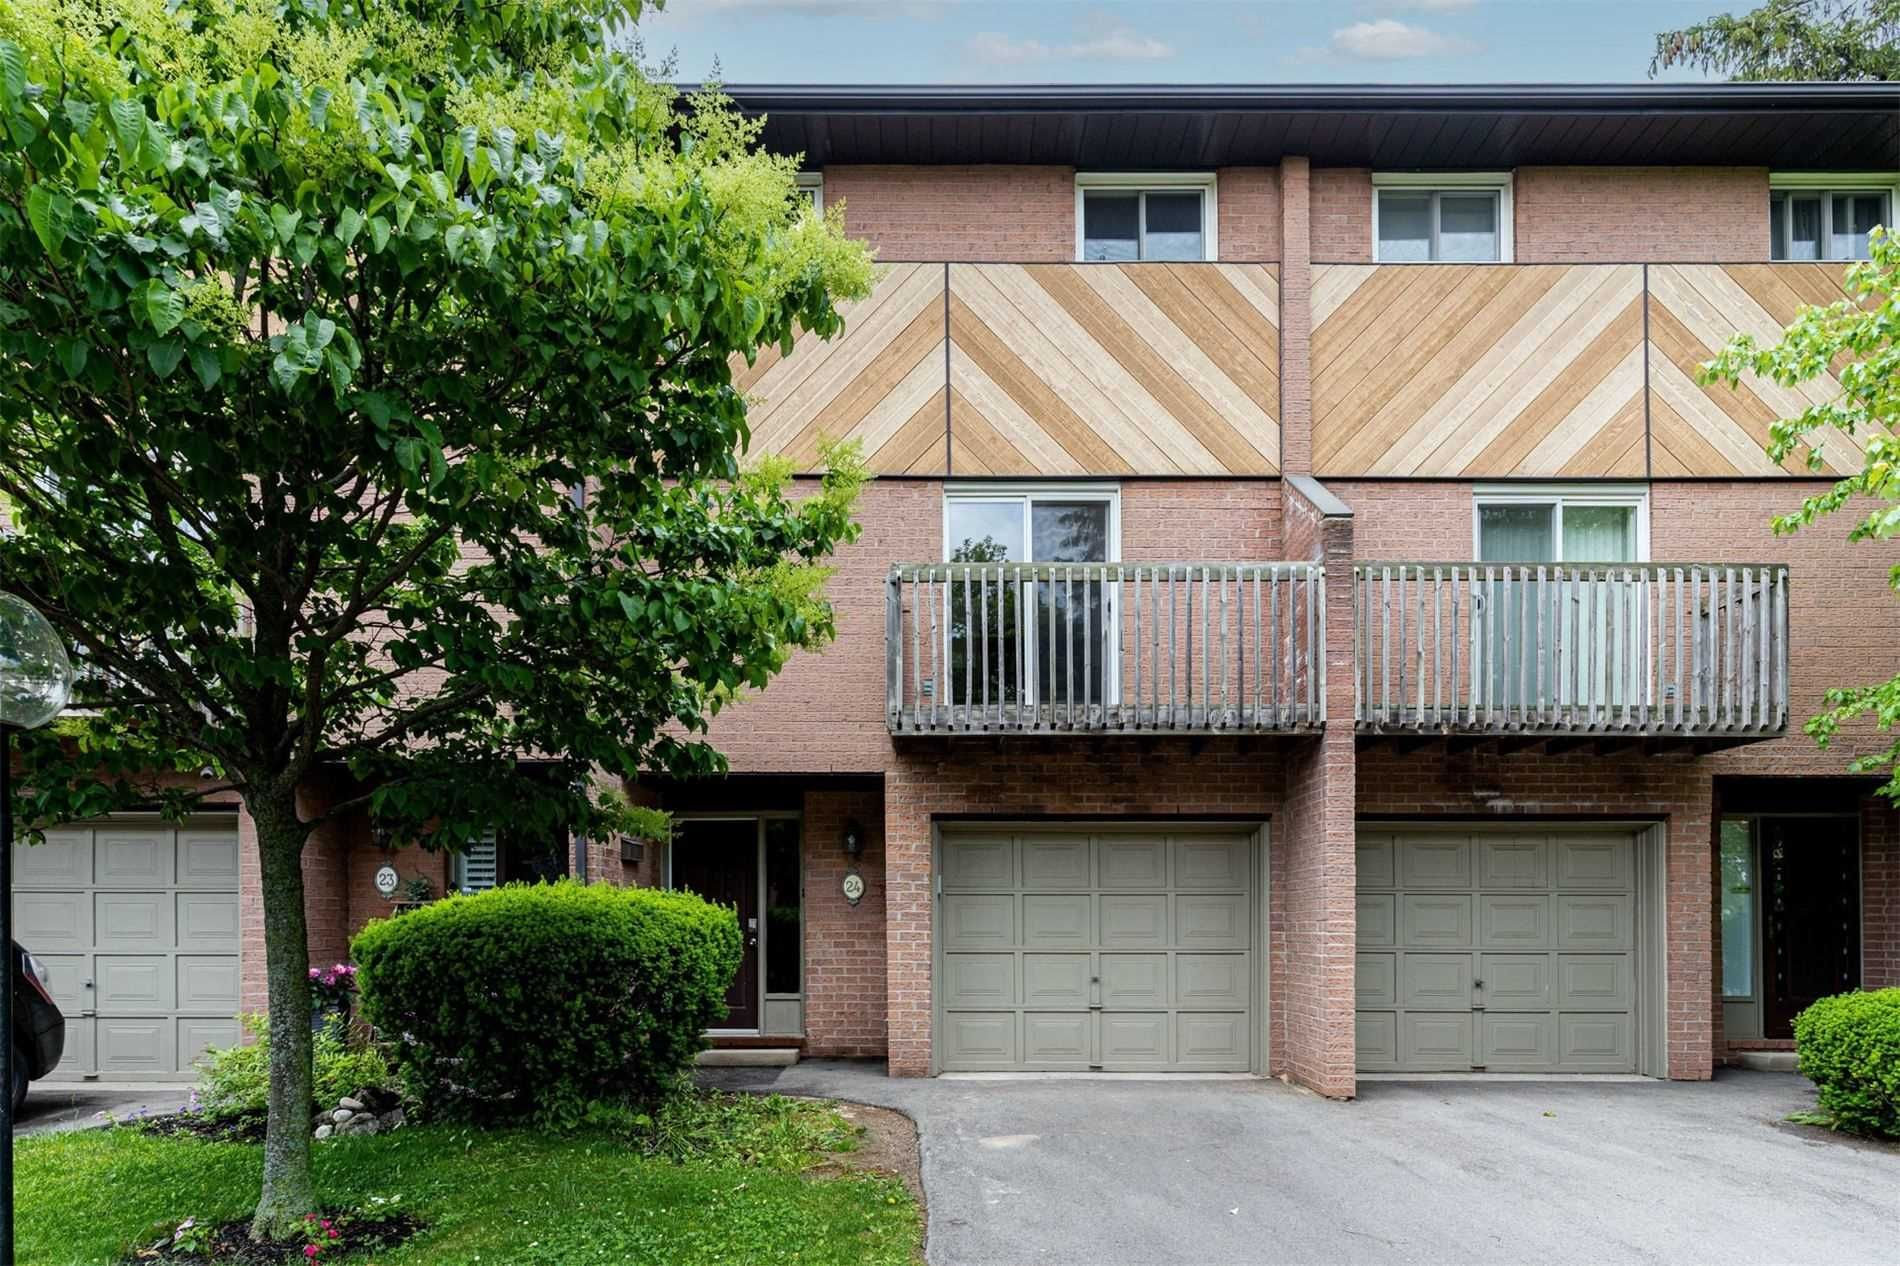 445 Stone Church Rd W, unit 24 for rent in Toronto - image #1